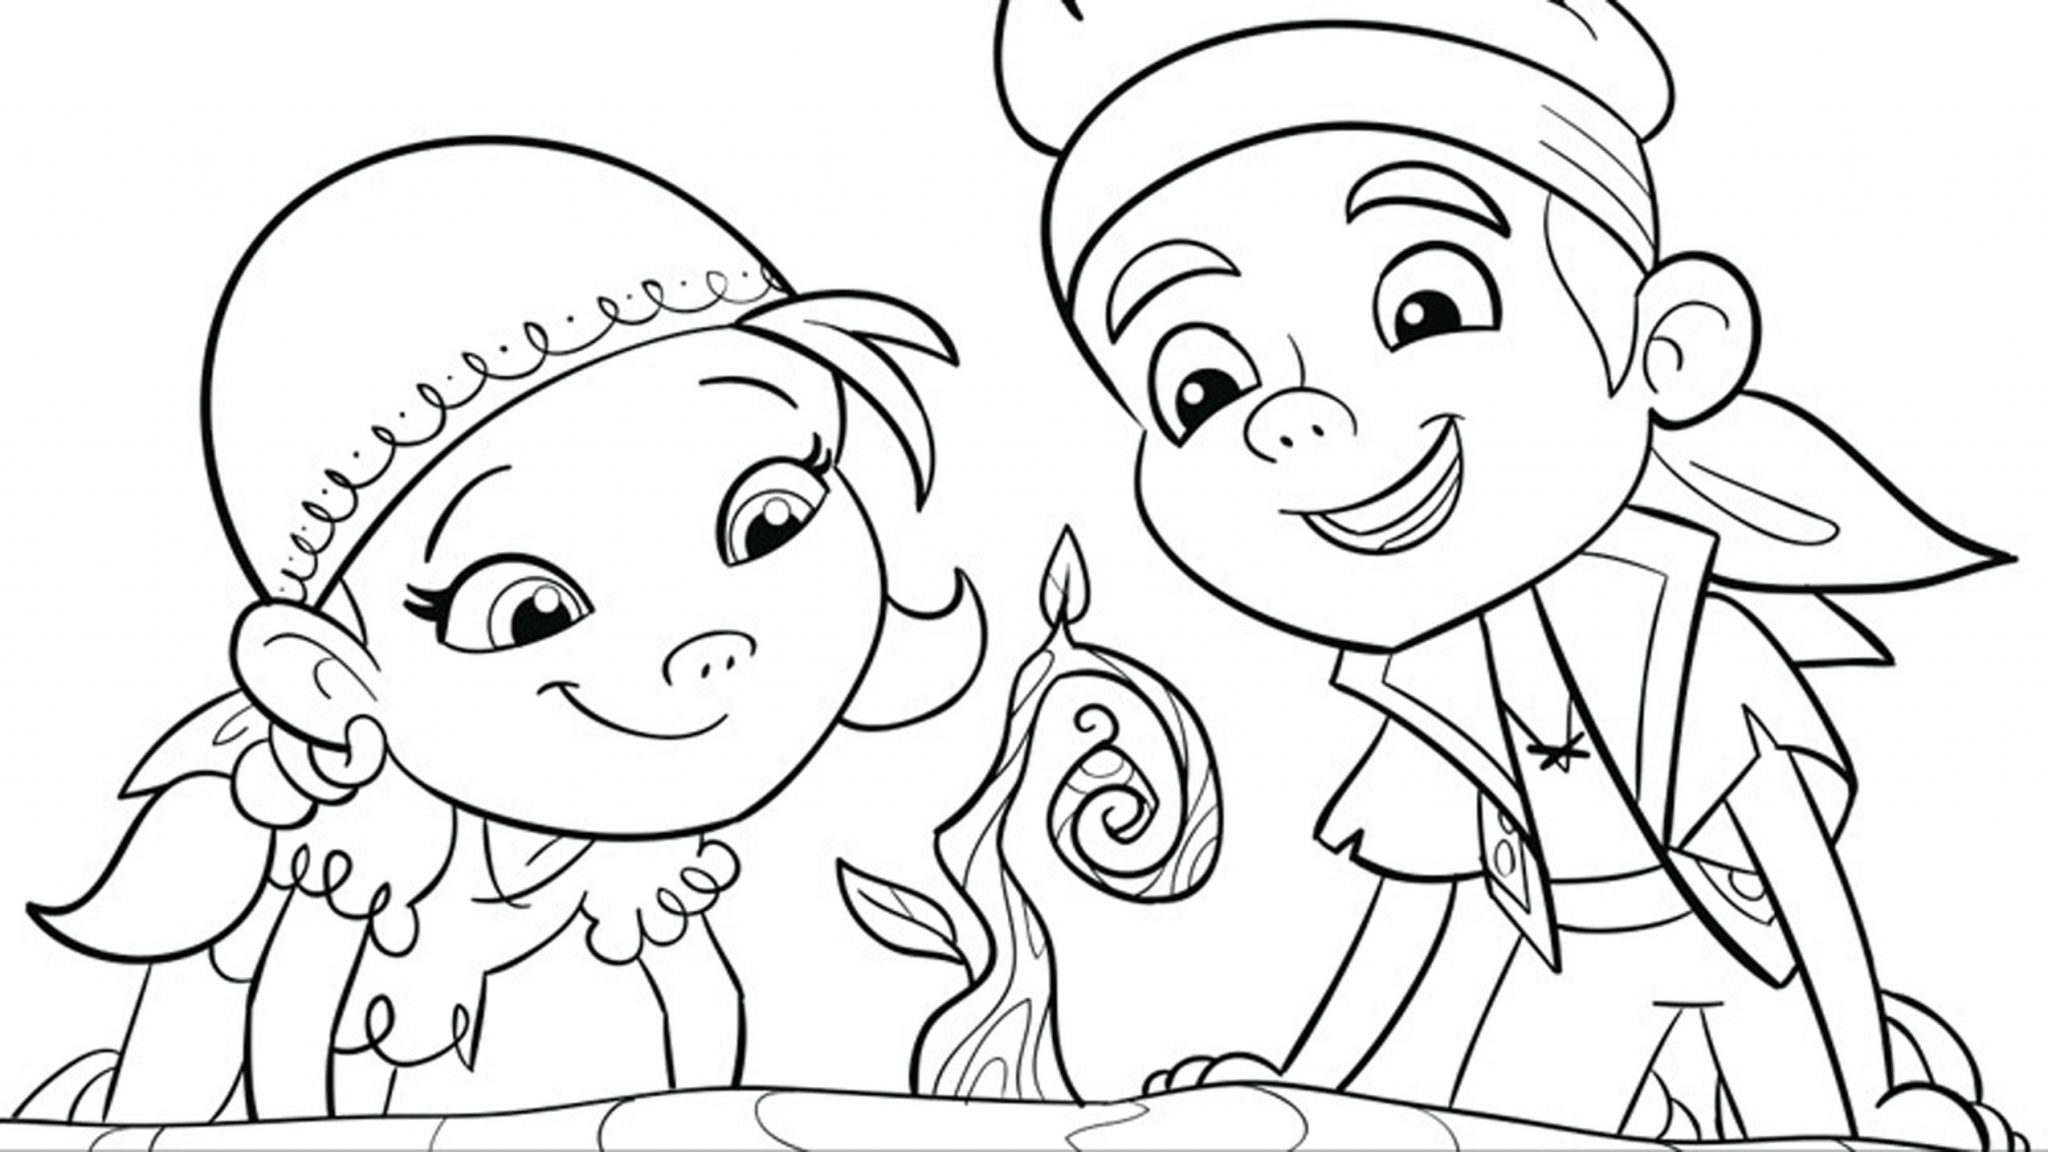 33 Free Disney Coloring Pages for Kids! | BAPS | free coloring pages for toddlers disney